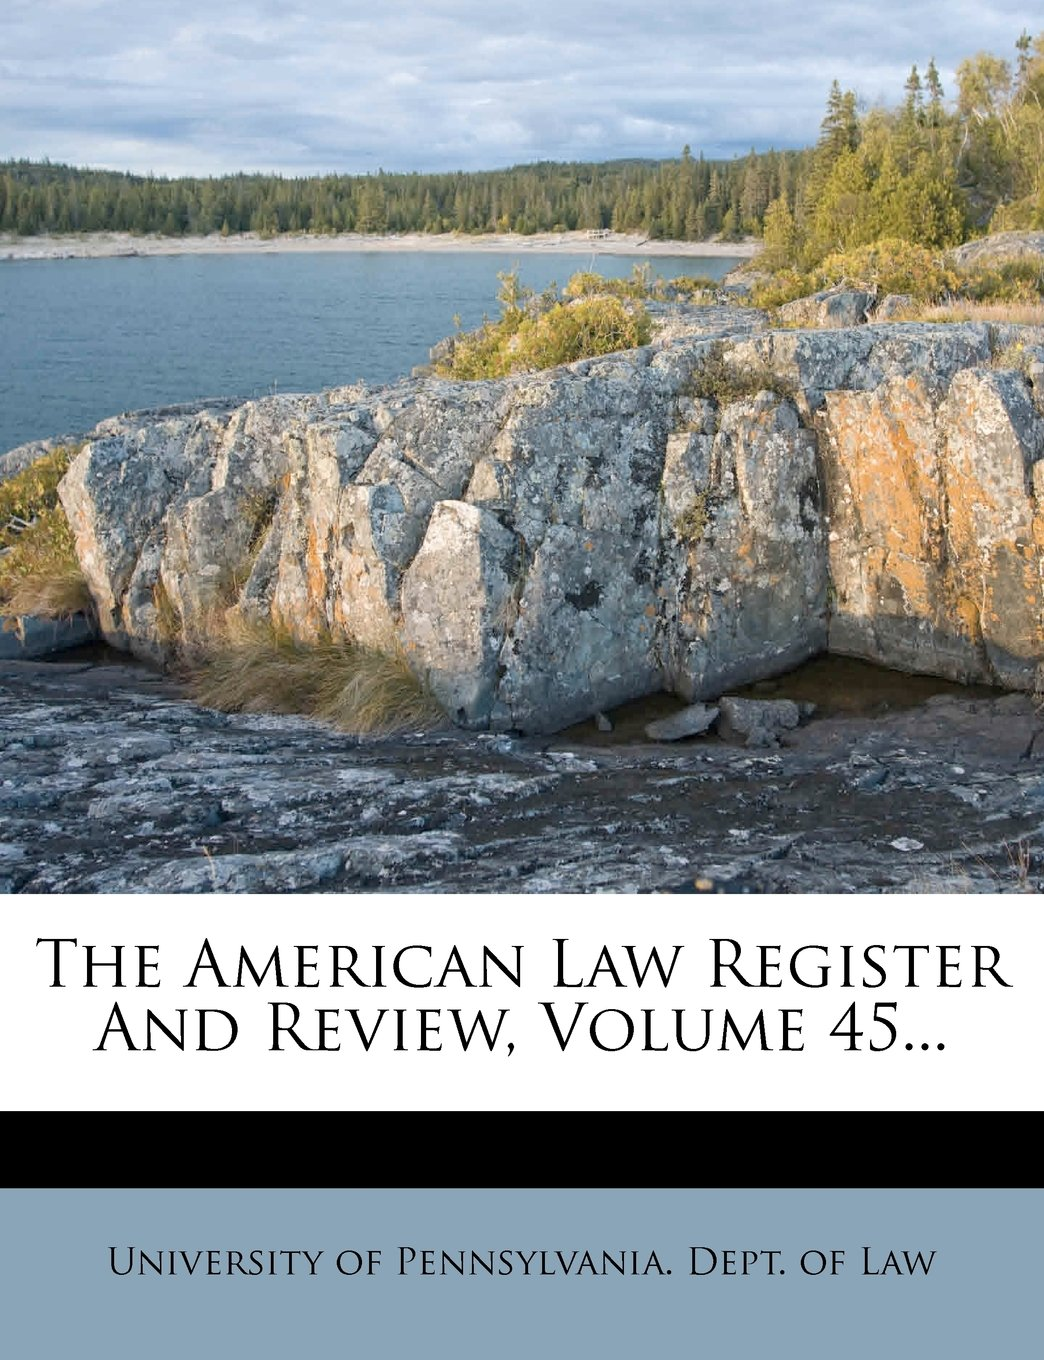 The American Law Register And Review, Volume 45... ePub fb2 ebook